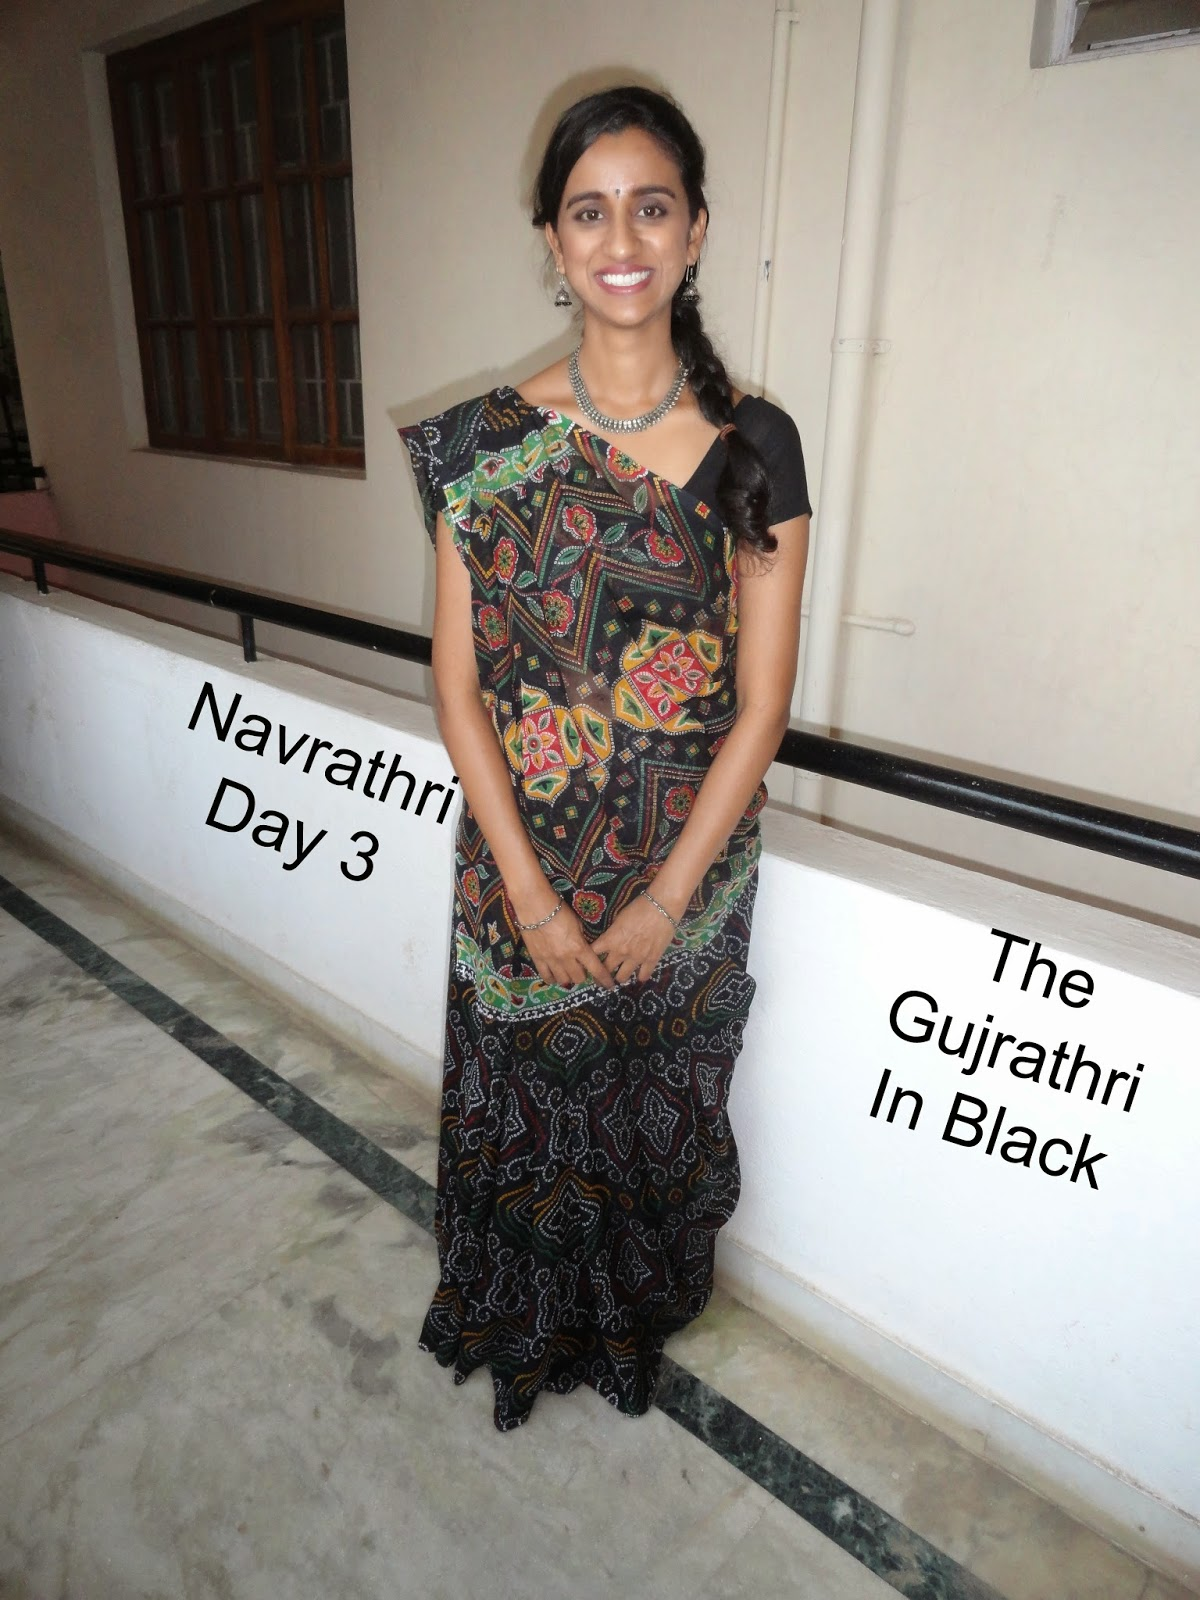 Navrathri Day 3: The Gujrathi in Black image